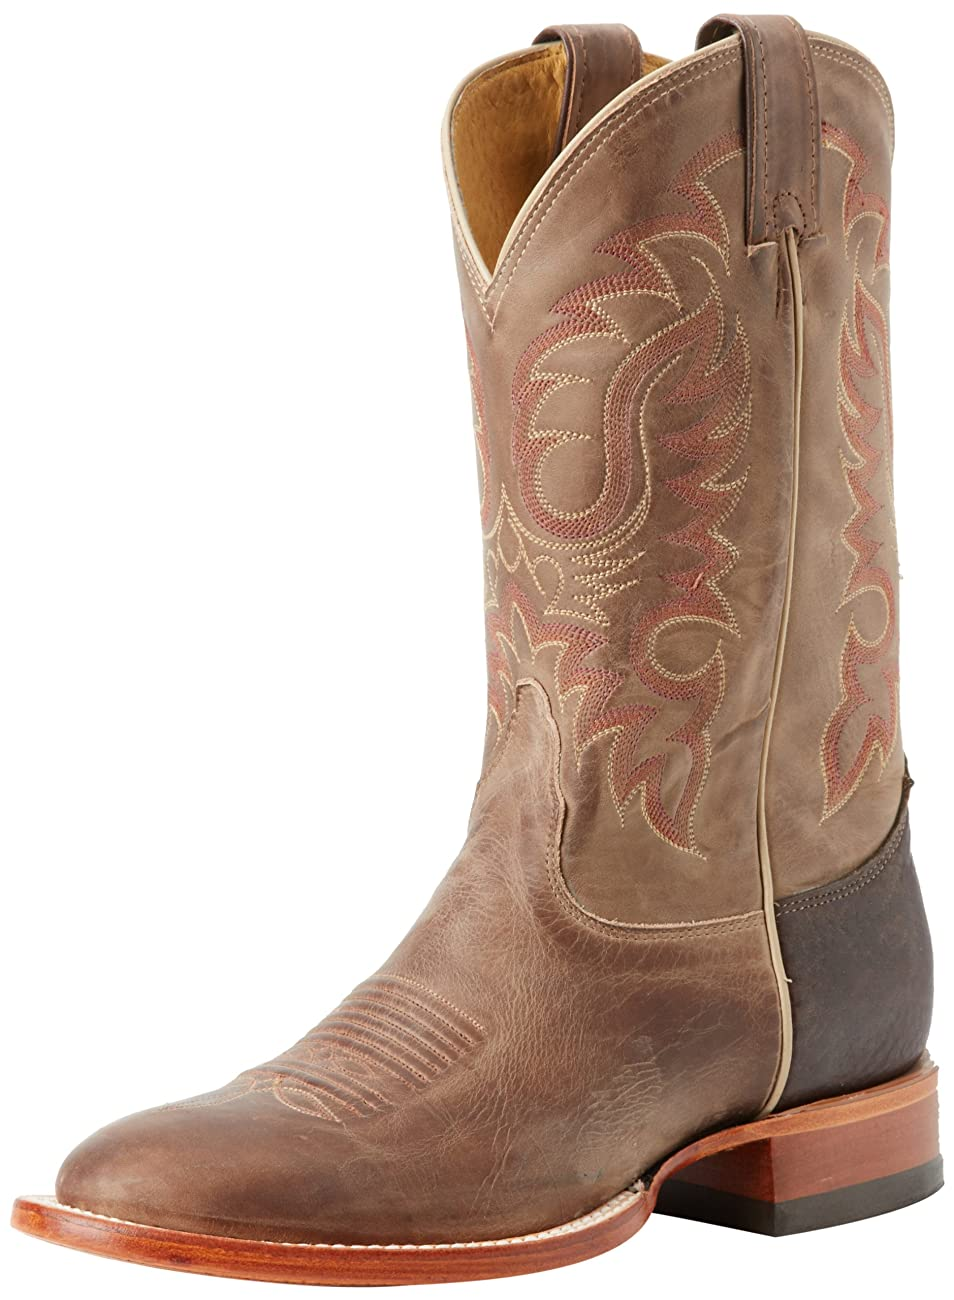 Nocona Boots Men's MD2732 11 Inch Boot 0